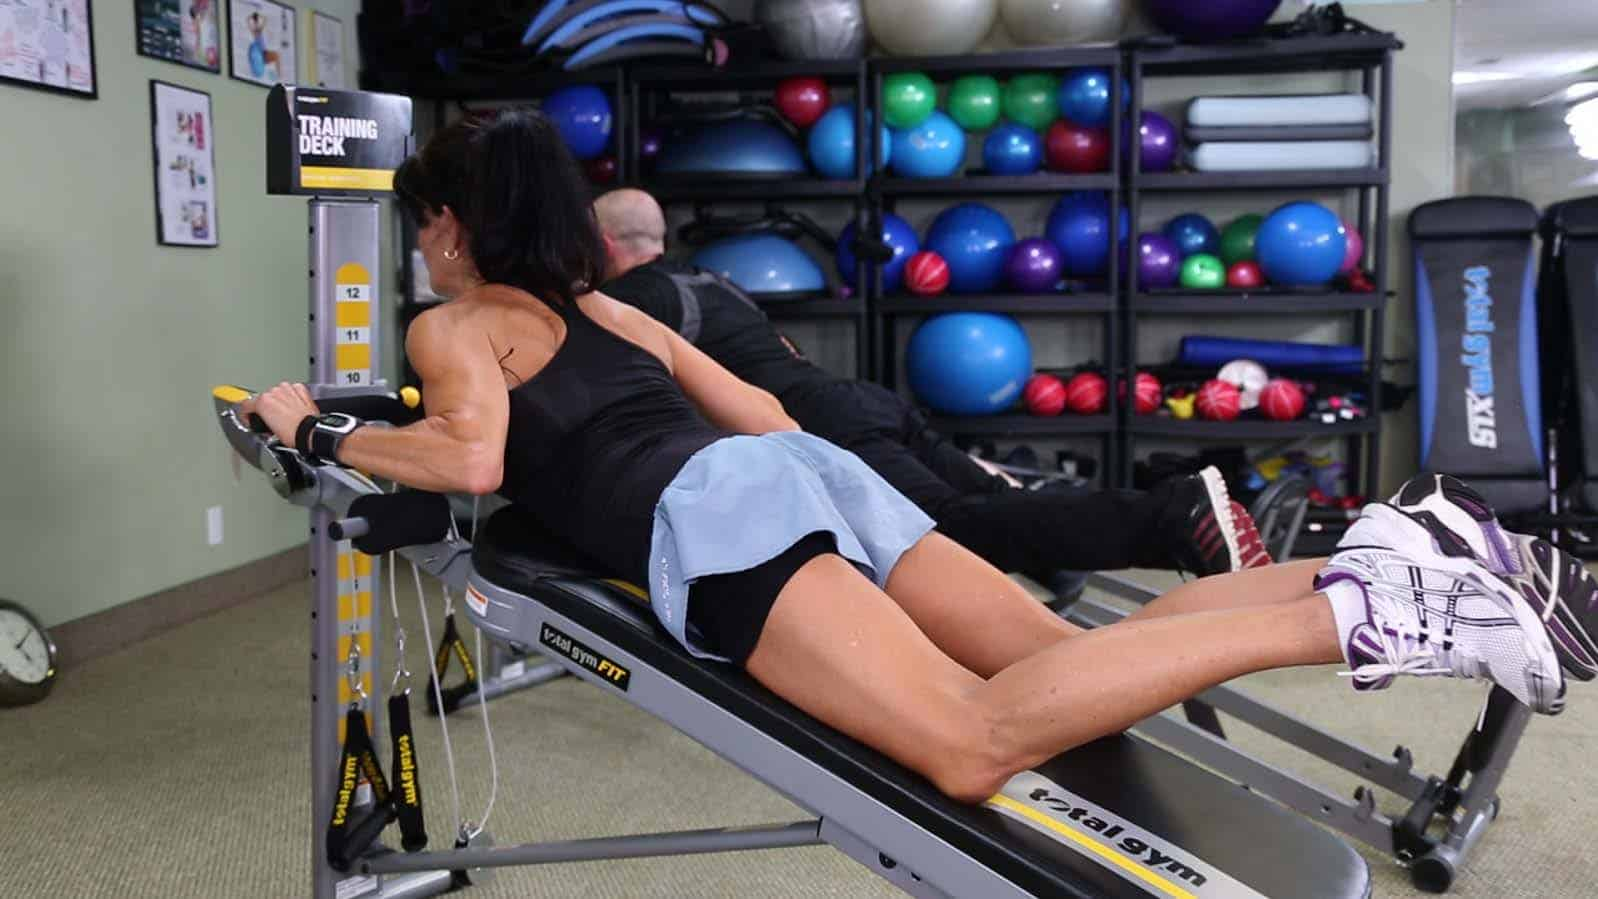 TotalGymChallengeWorkoutwithPictures_Page_05_Image_0001